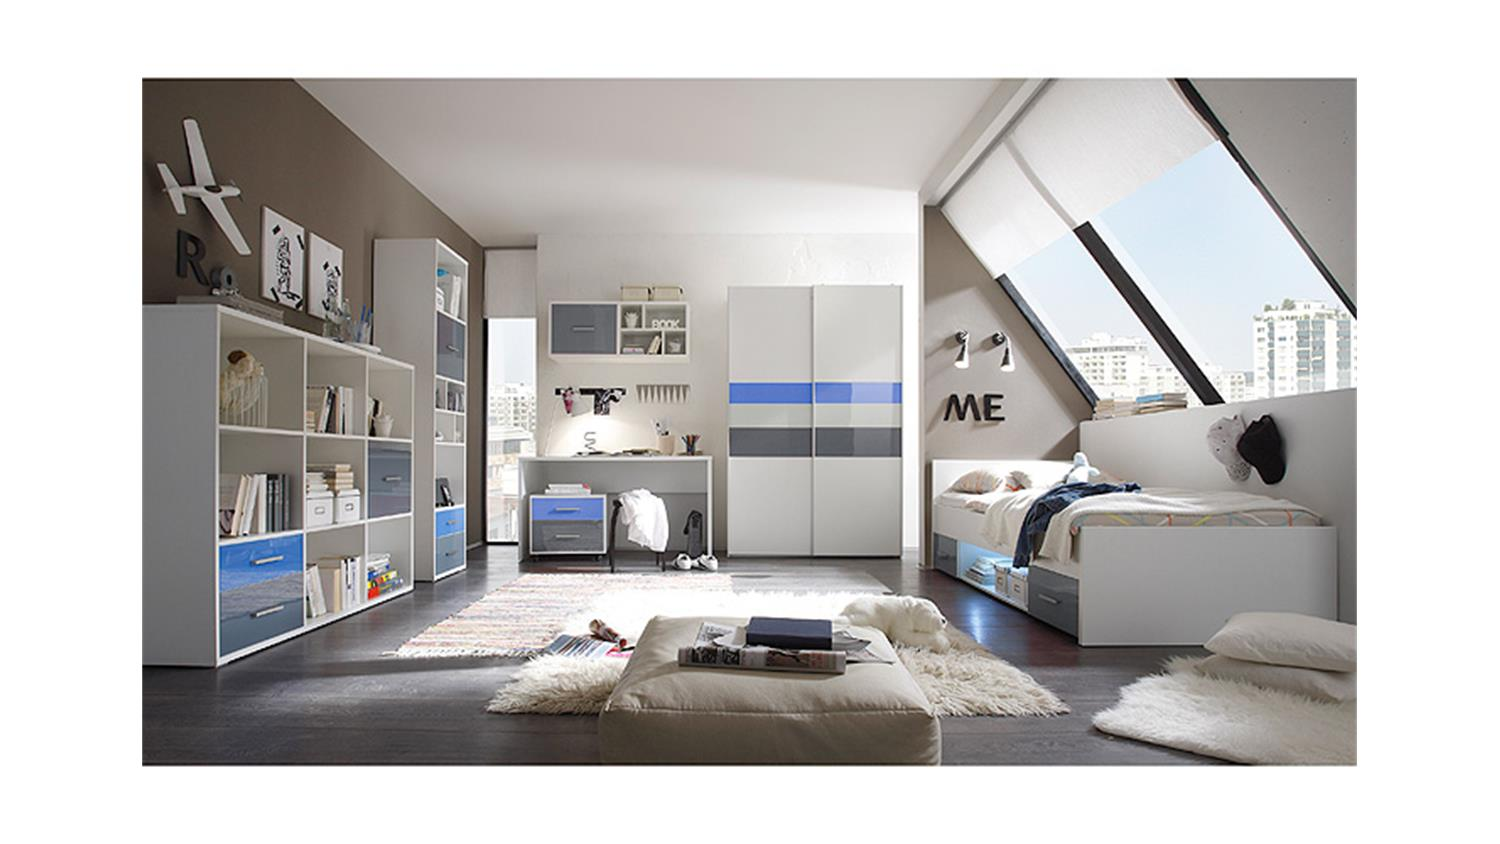 schreibtisch colori wei inkl rollcontainer blau grau. Black Bedroom Furniture Sets. Home Design Ideas